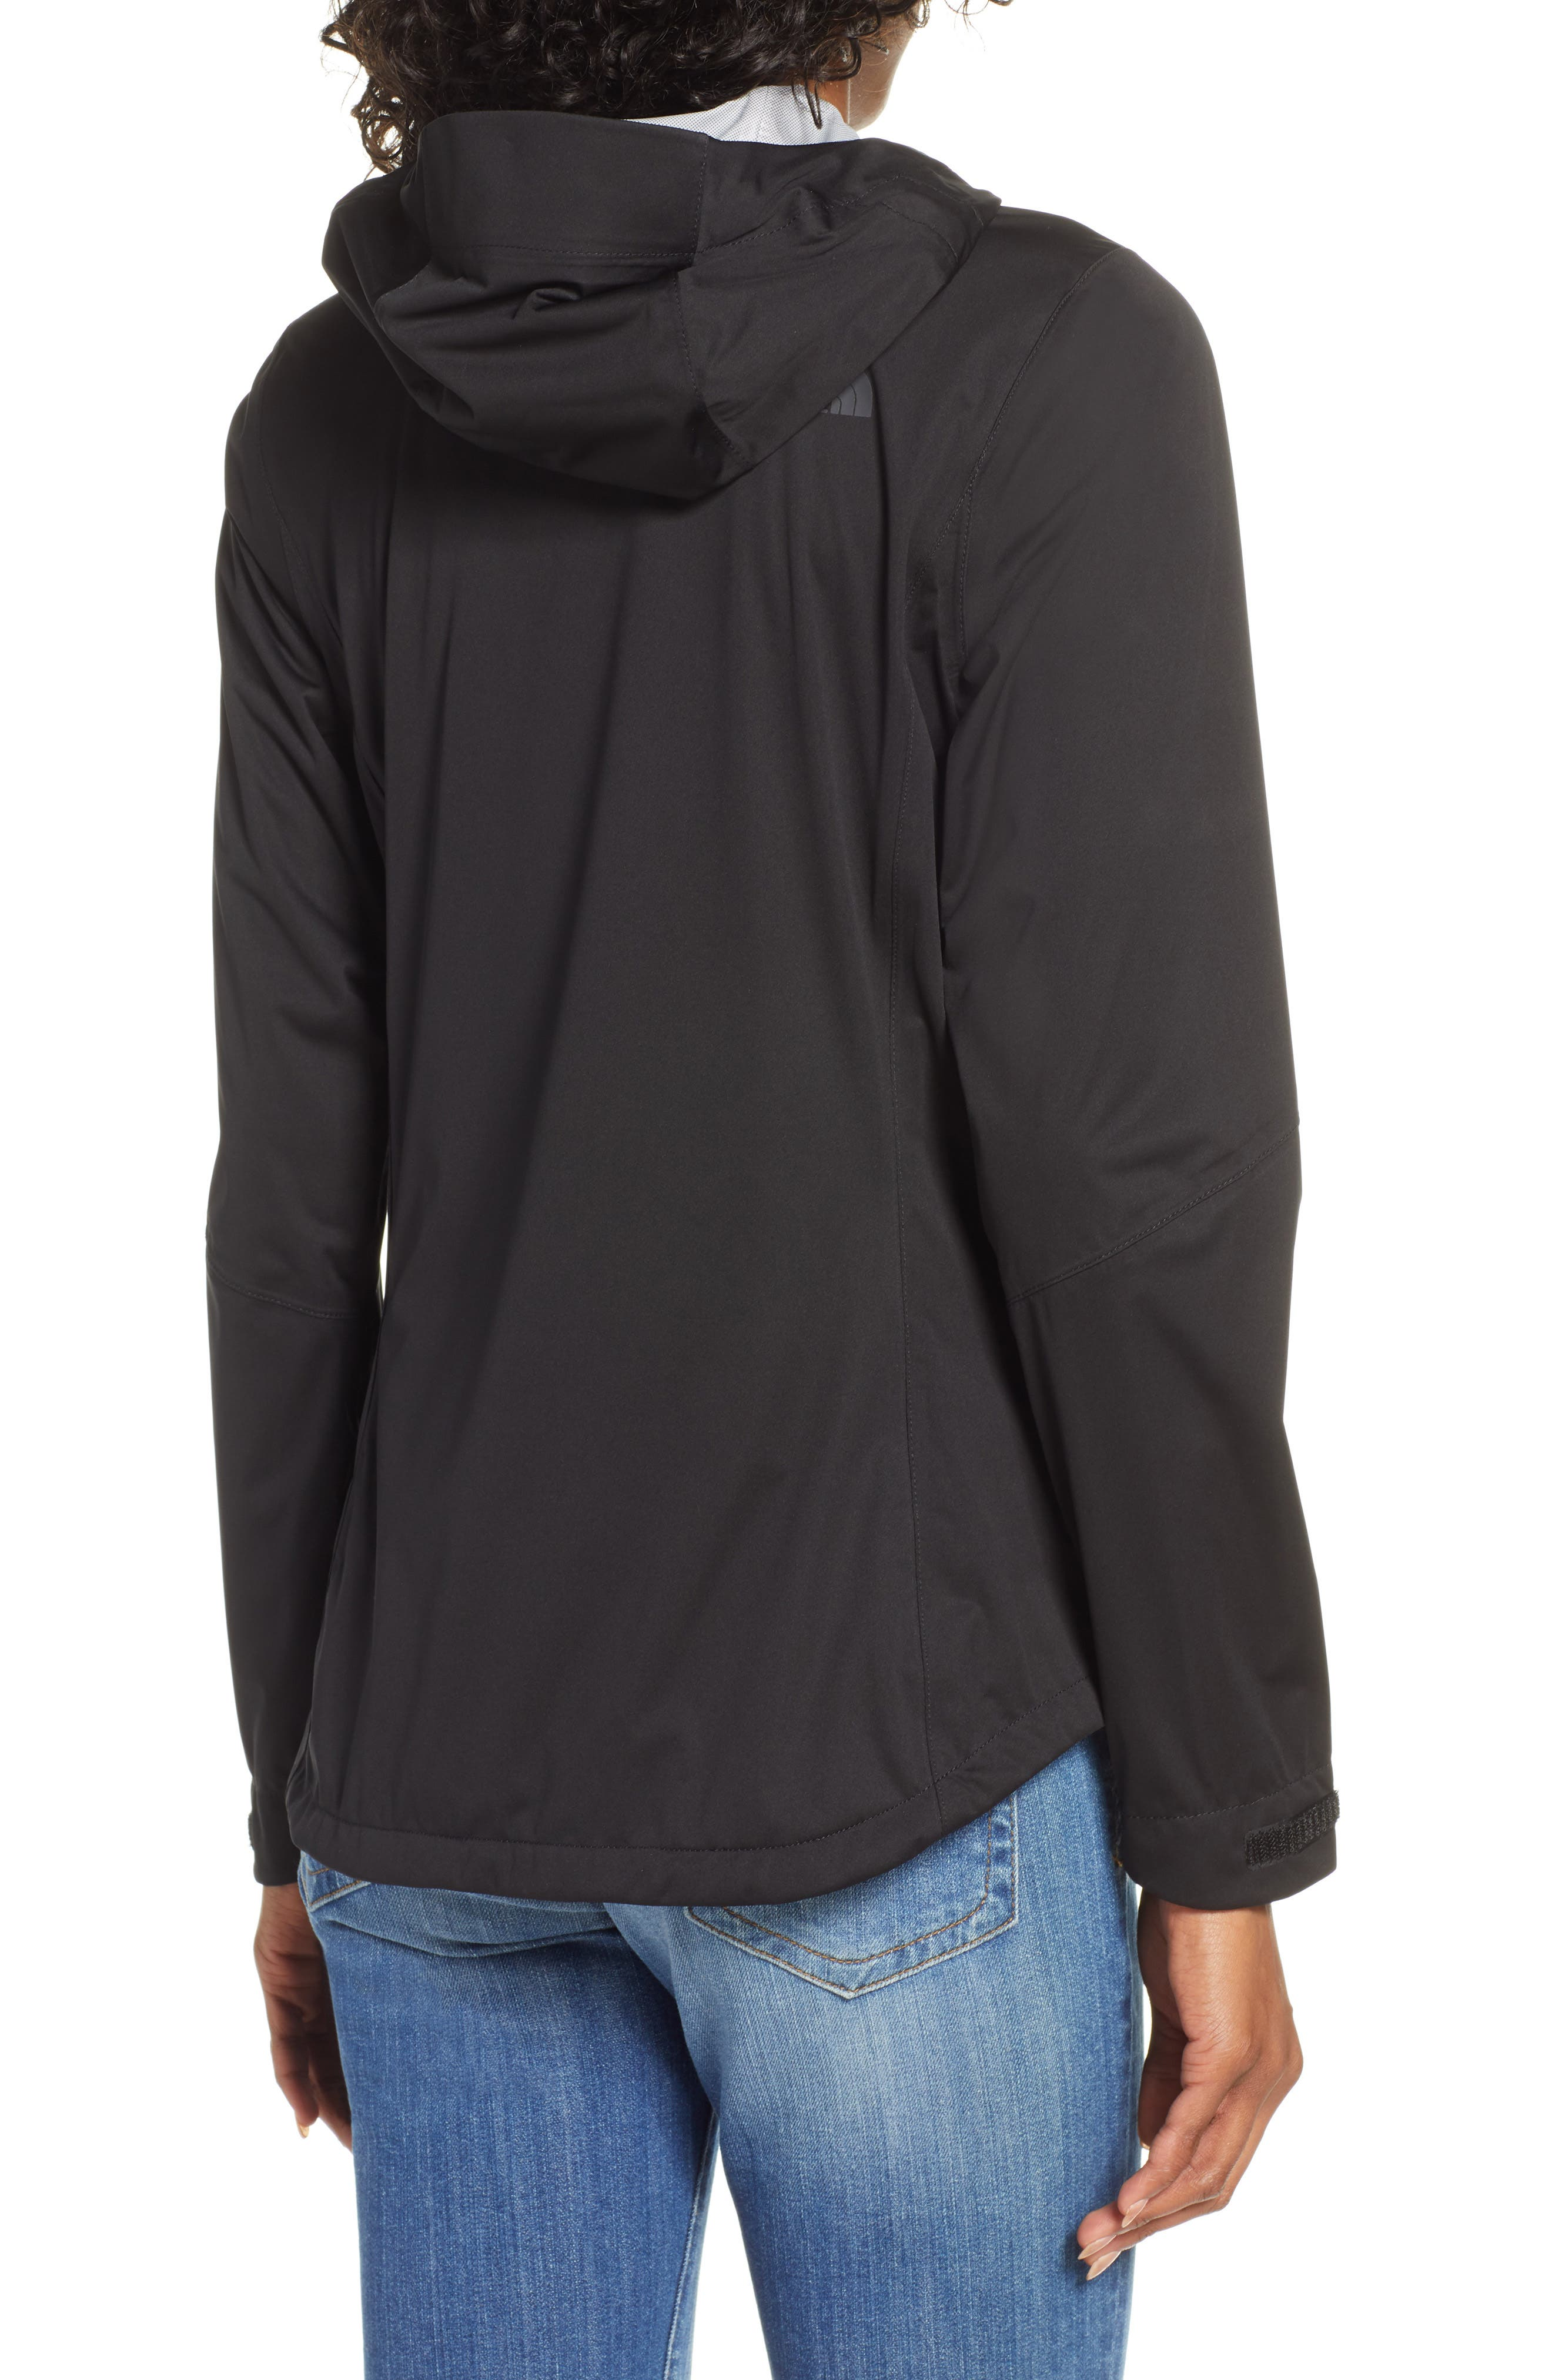 THE NORTH FACE, Allproof Stretch Jacket, Alternate thumbnail 2, color, TNF BLACK